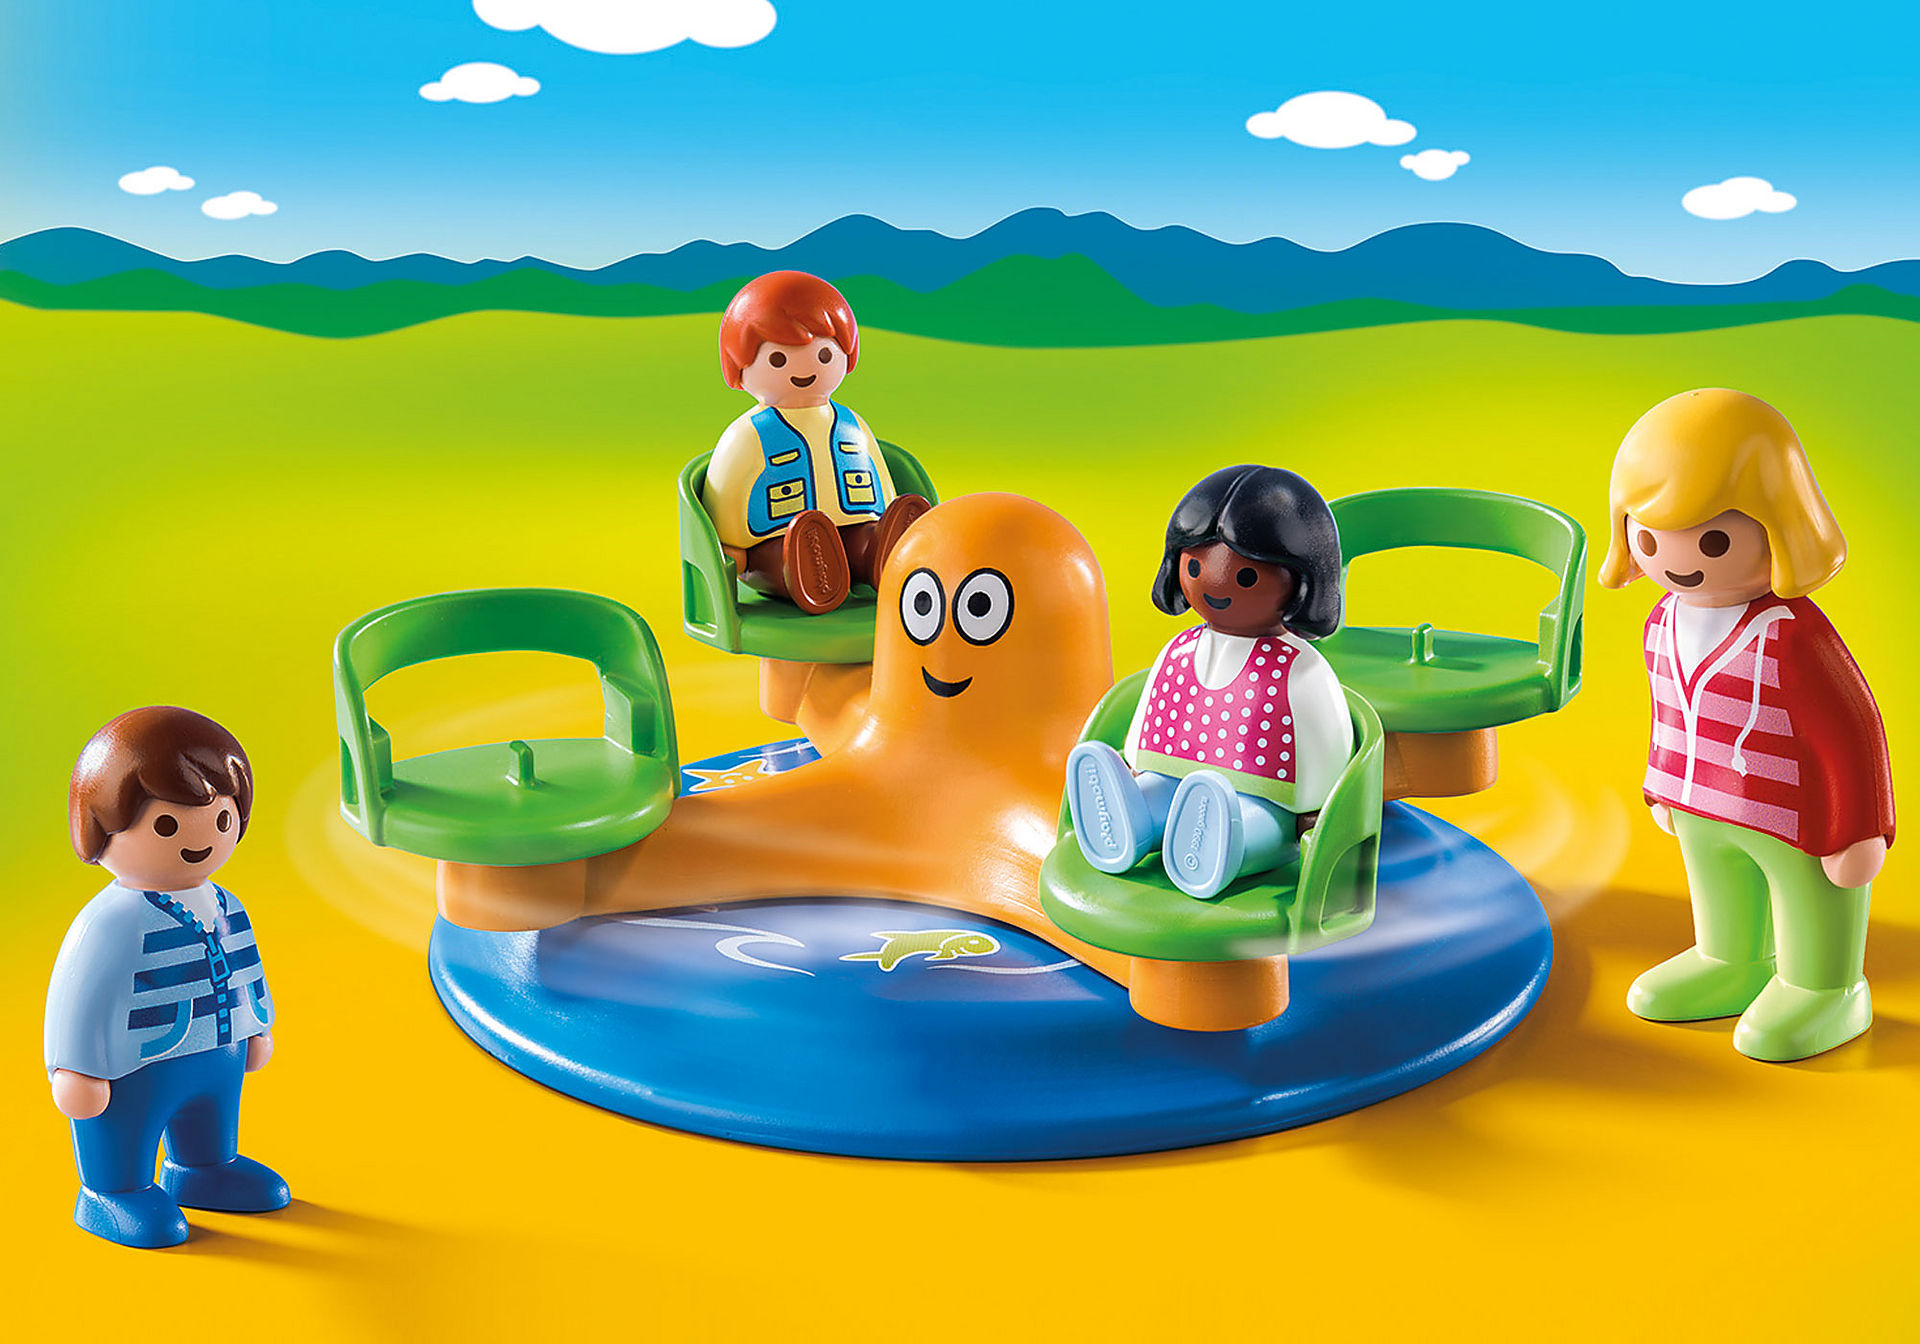 http://media.playmobil.com/i/playmobil/9379_product_detail/1.2.3 Carrossel Infantil